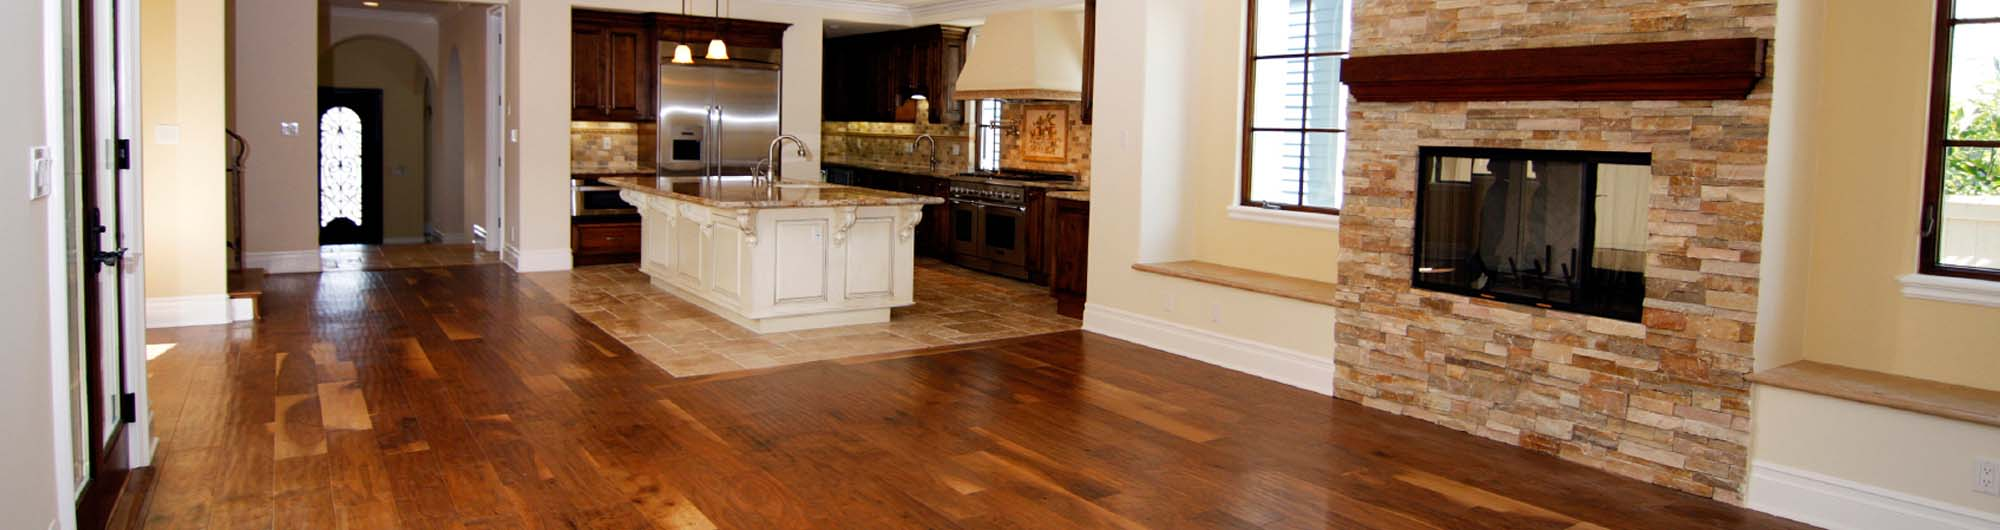 East Coast Construction and Remodeling Inc. - Flooring